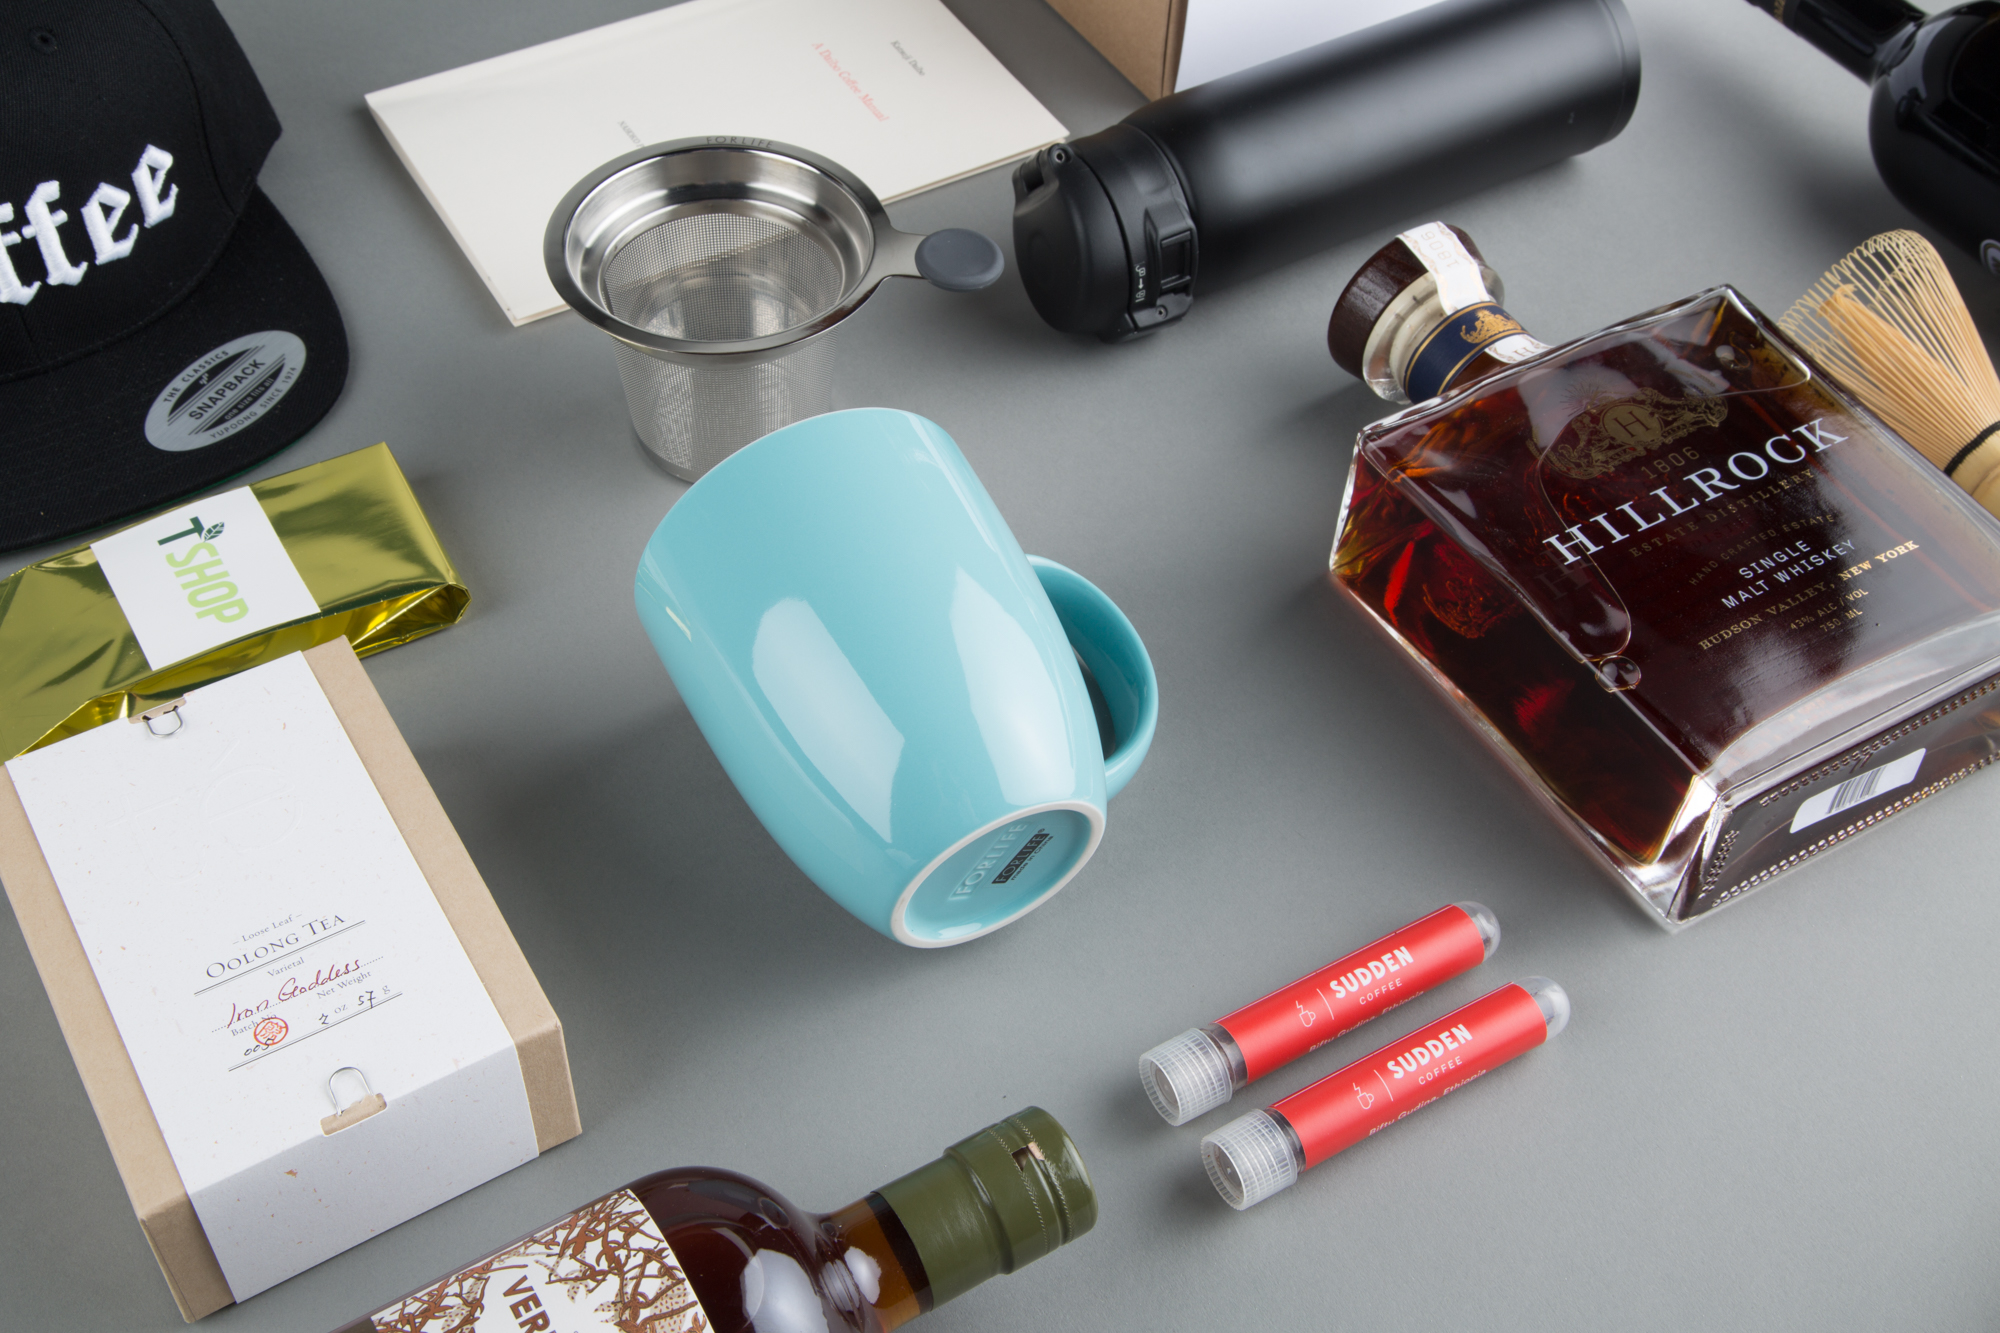 Selection of drinks products for the gift guide